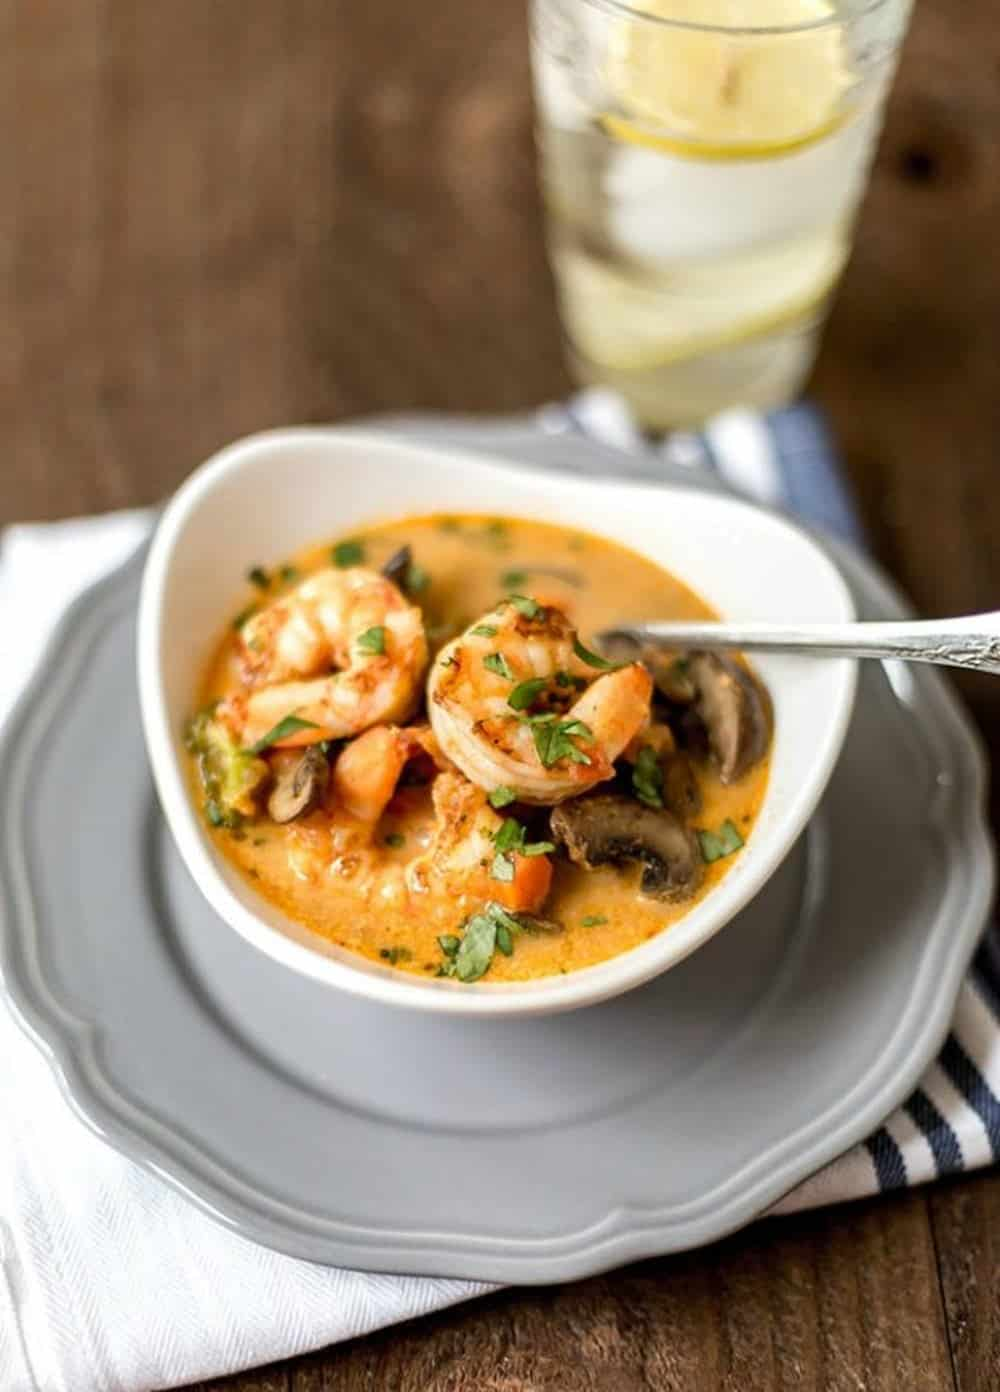 Shrimp and veggie coconut curry